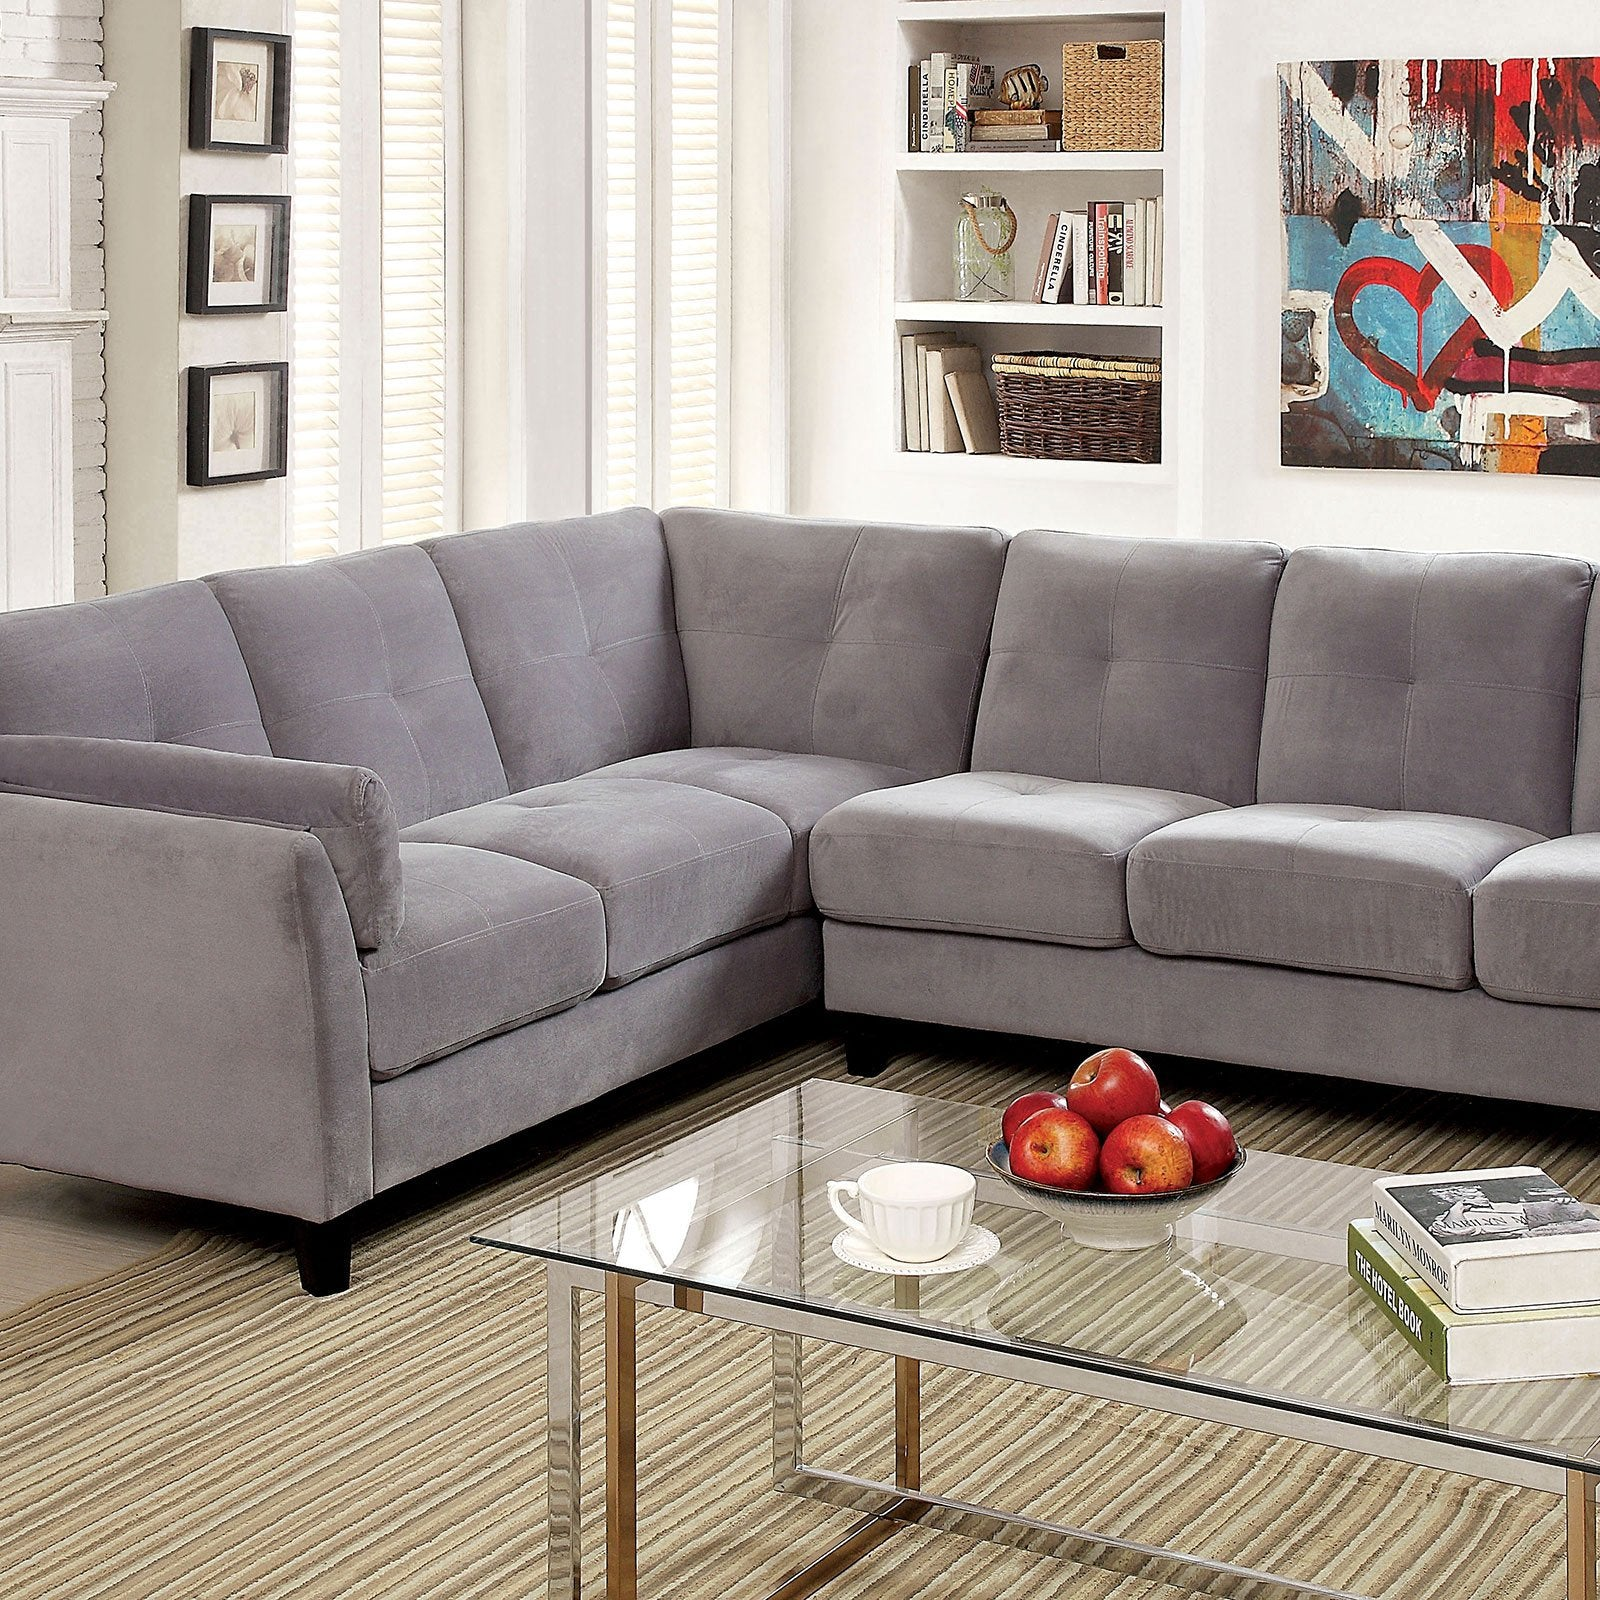 PEEVER II Contemporary One Arm Right Sofa - InteriorDesignsToGo.com